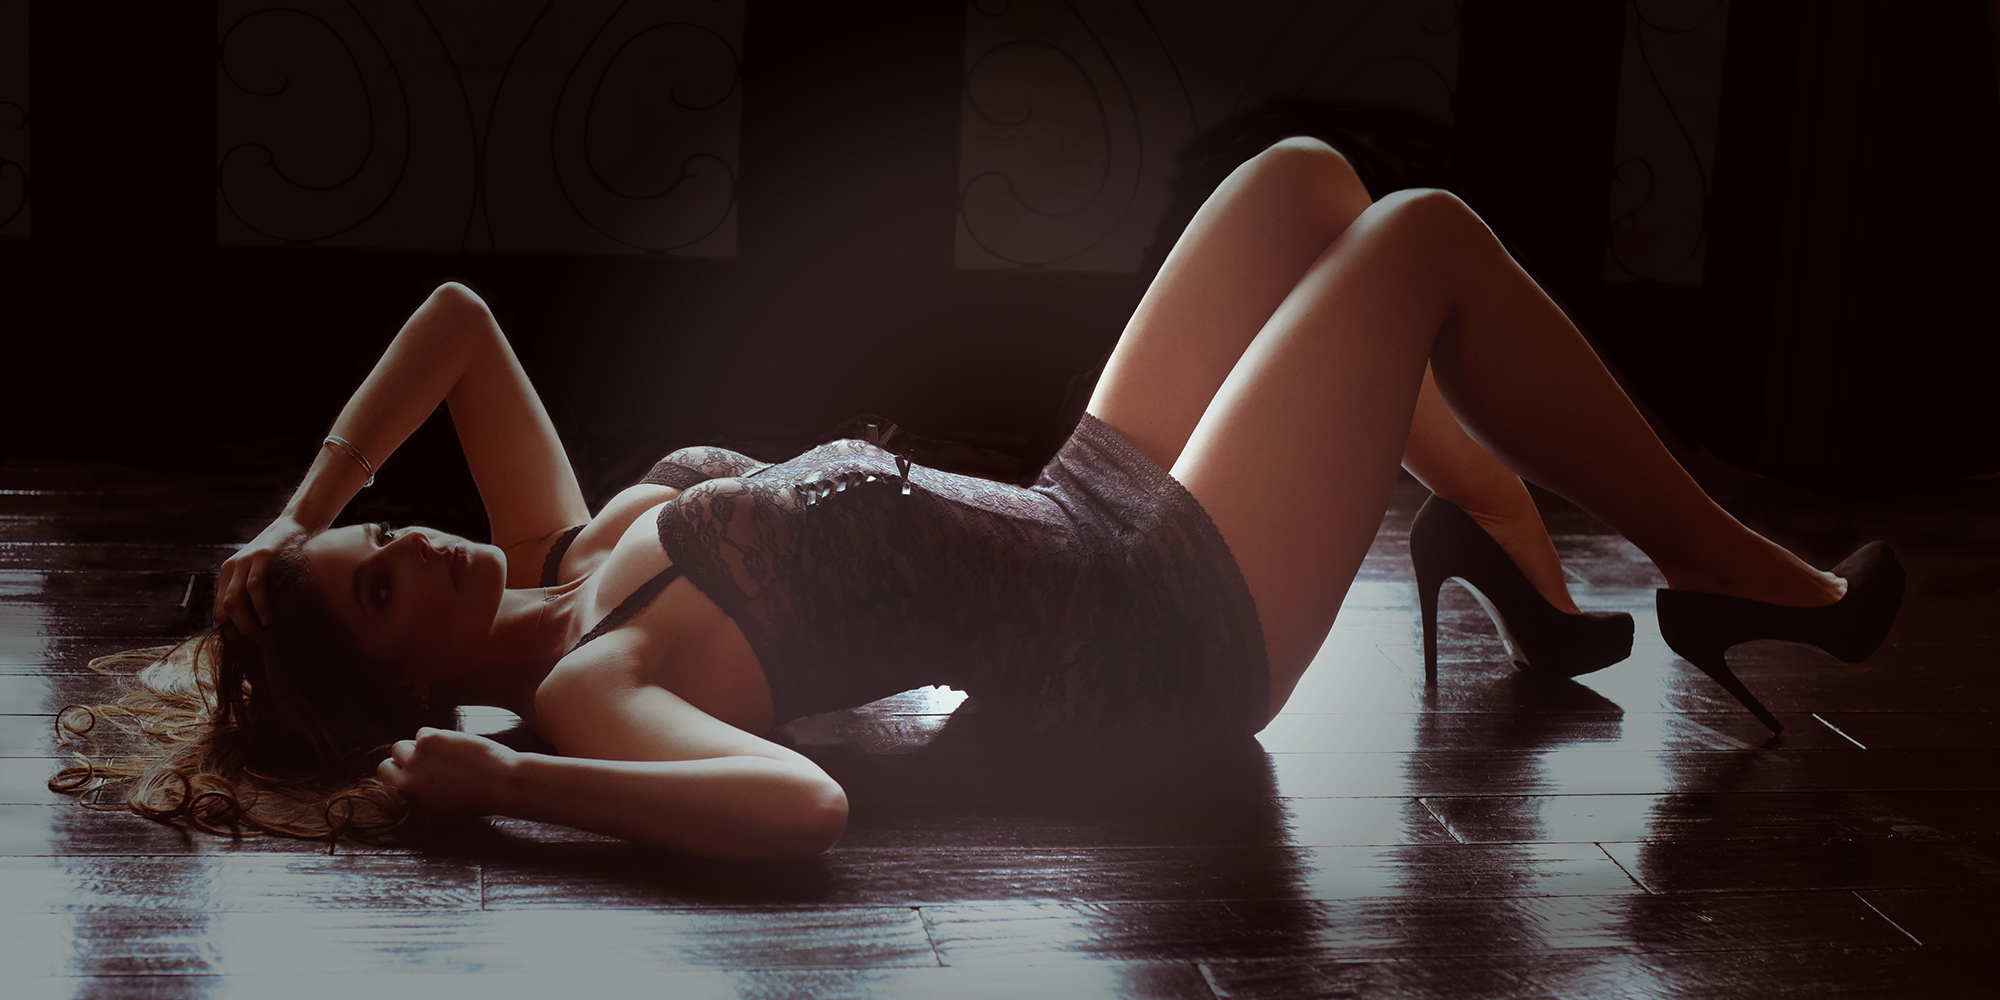 torso of woman laying down in black lingerie